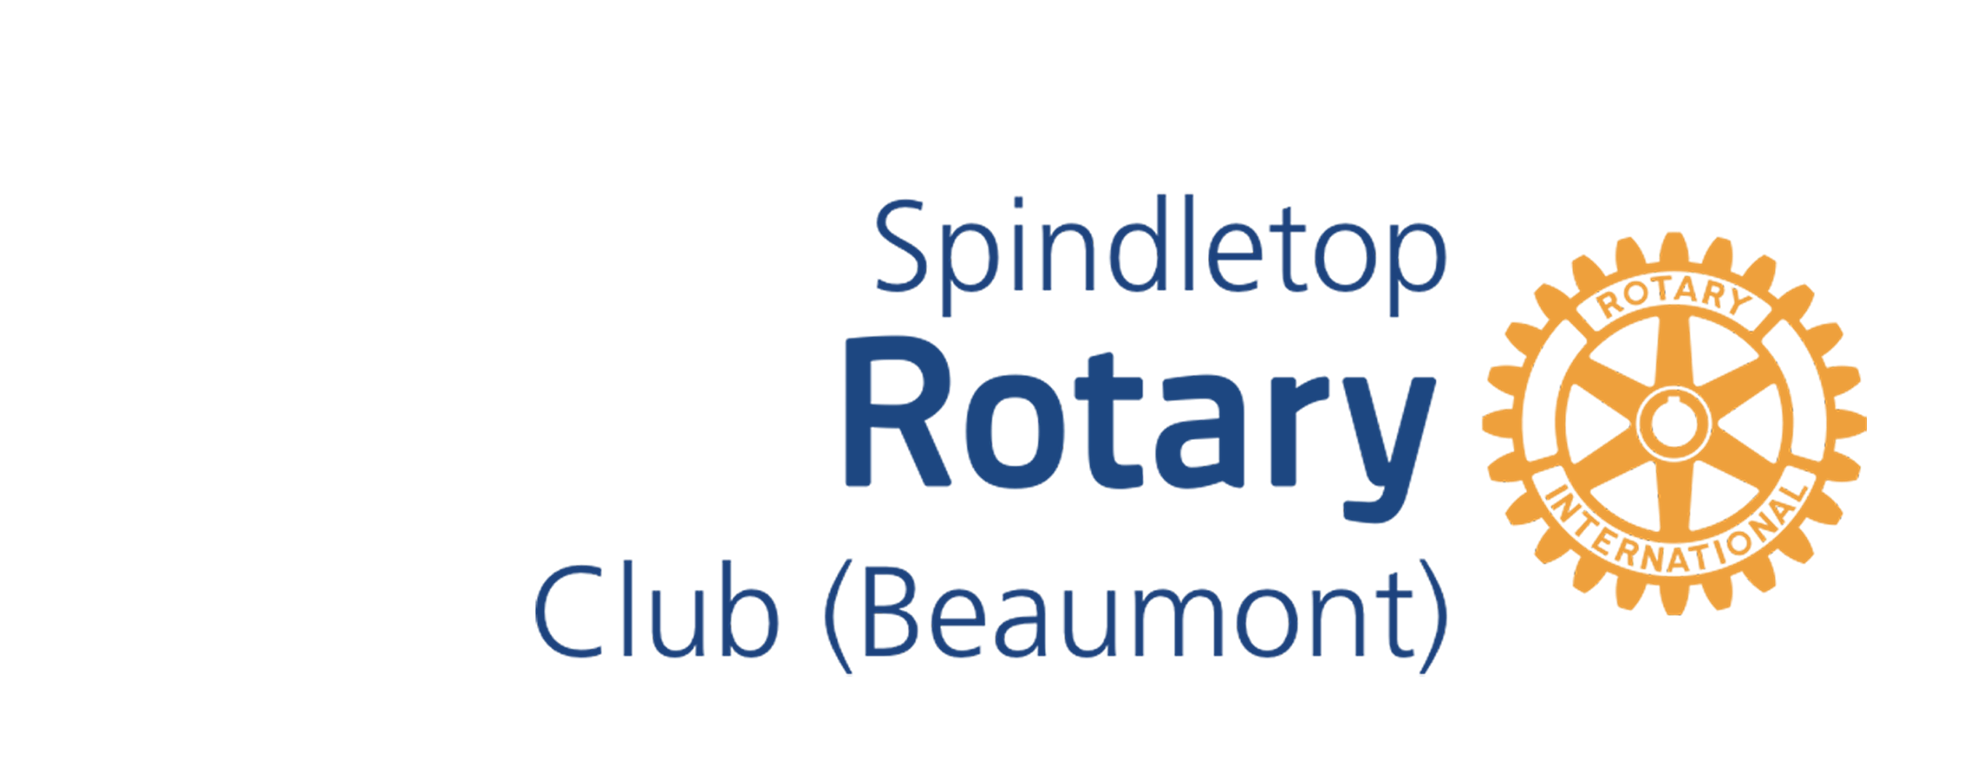 5Spindletop Rotary Club